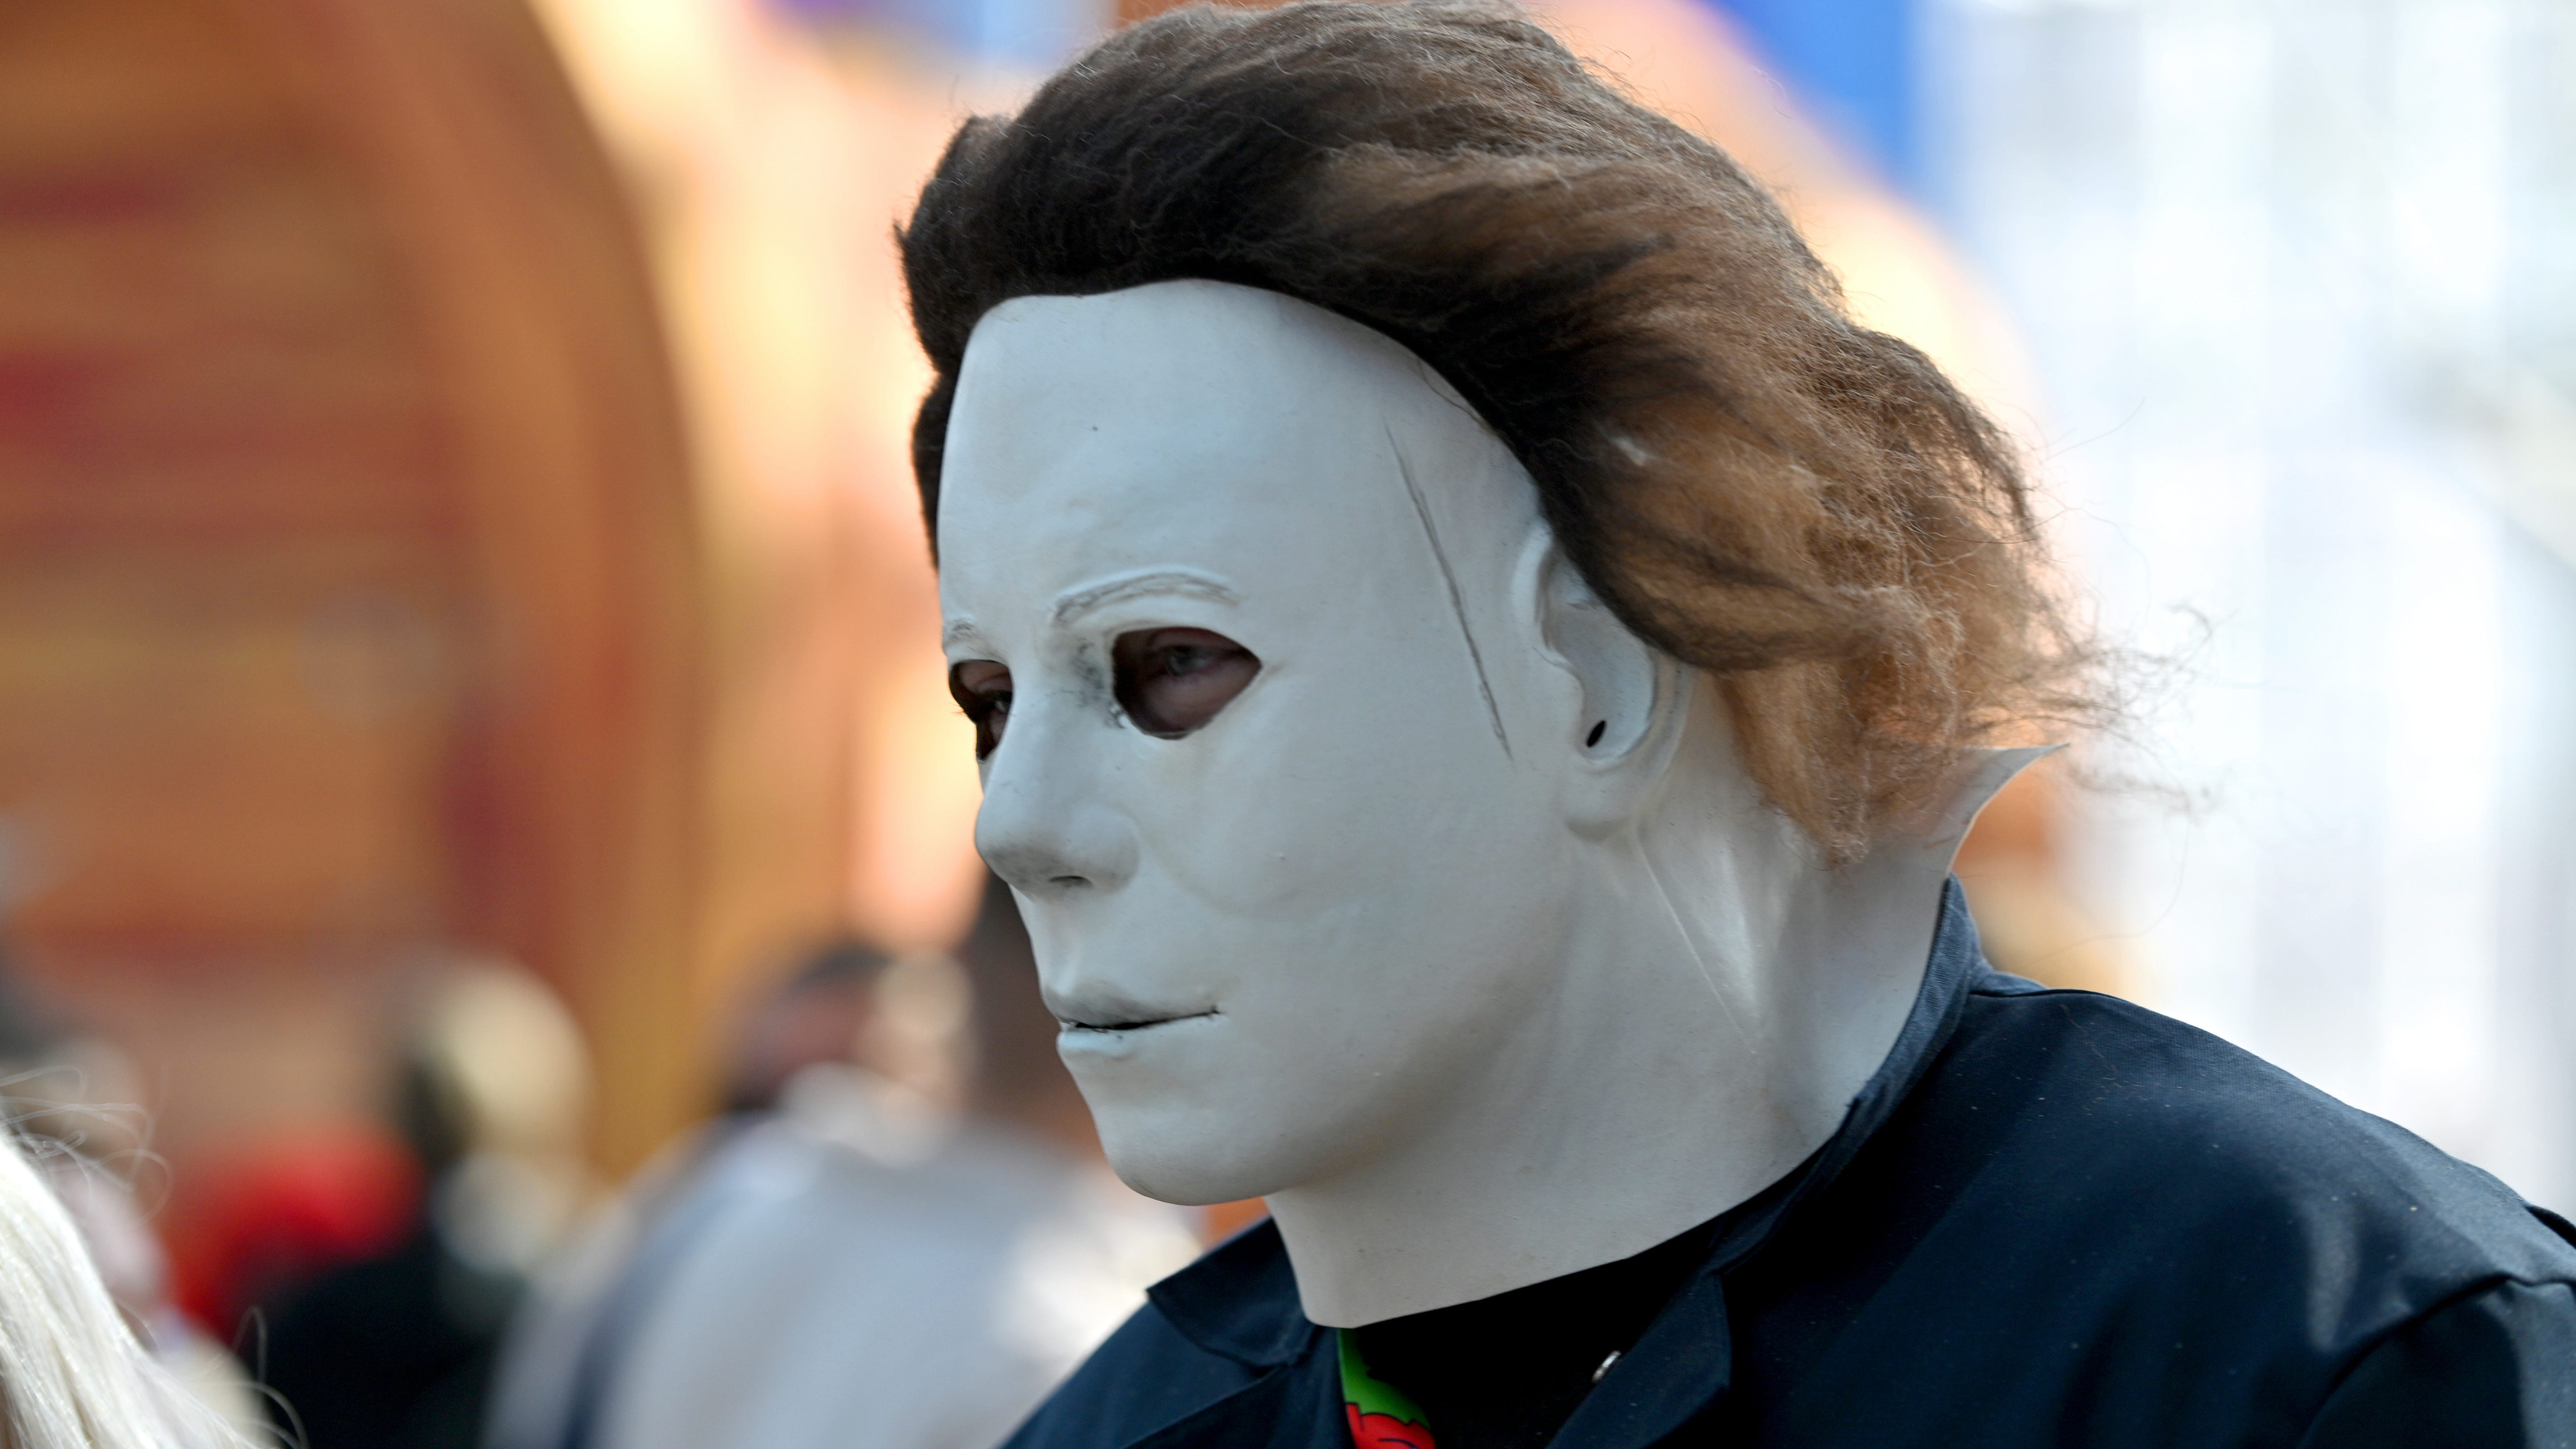 Man dressed like Michael Myers spotted on Galveston beach as storm approached, arrested